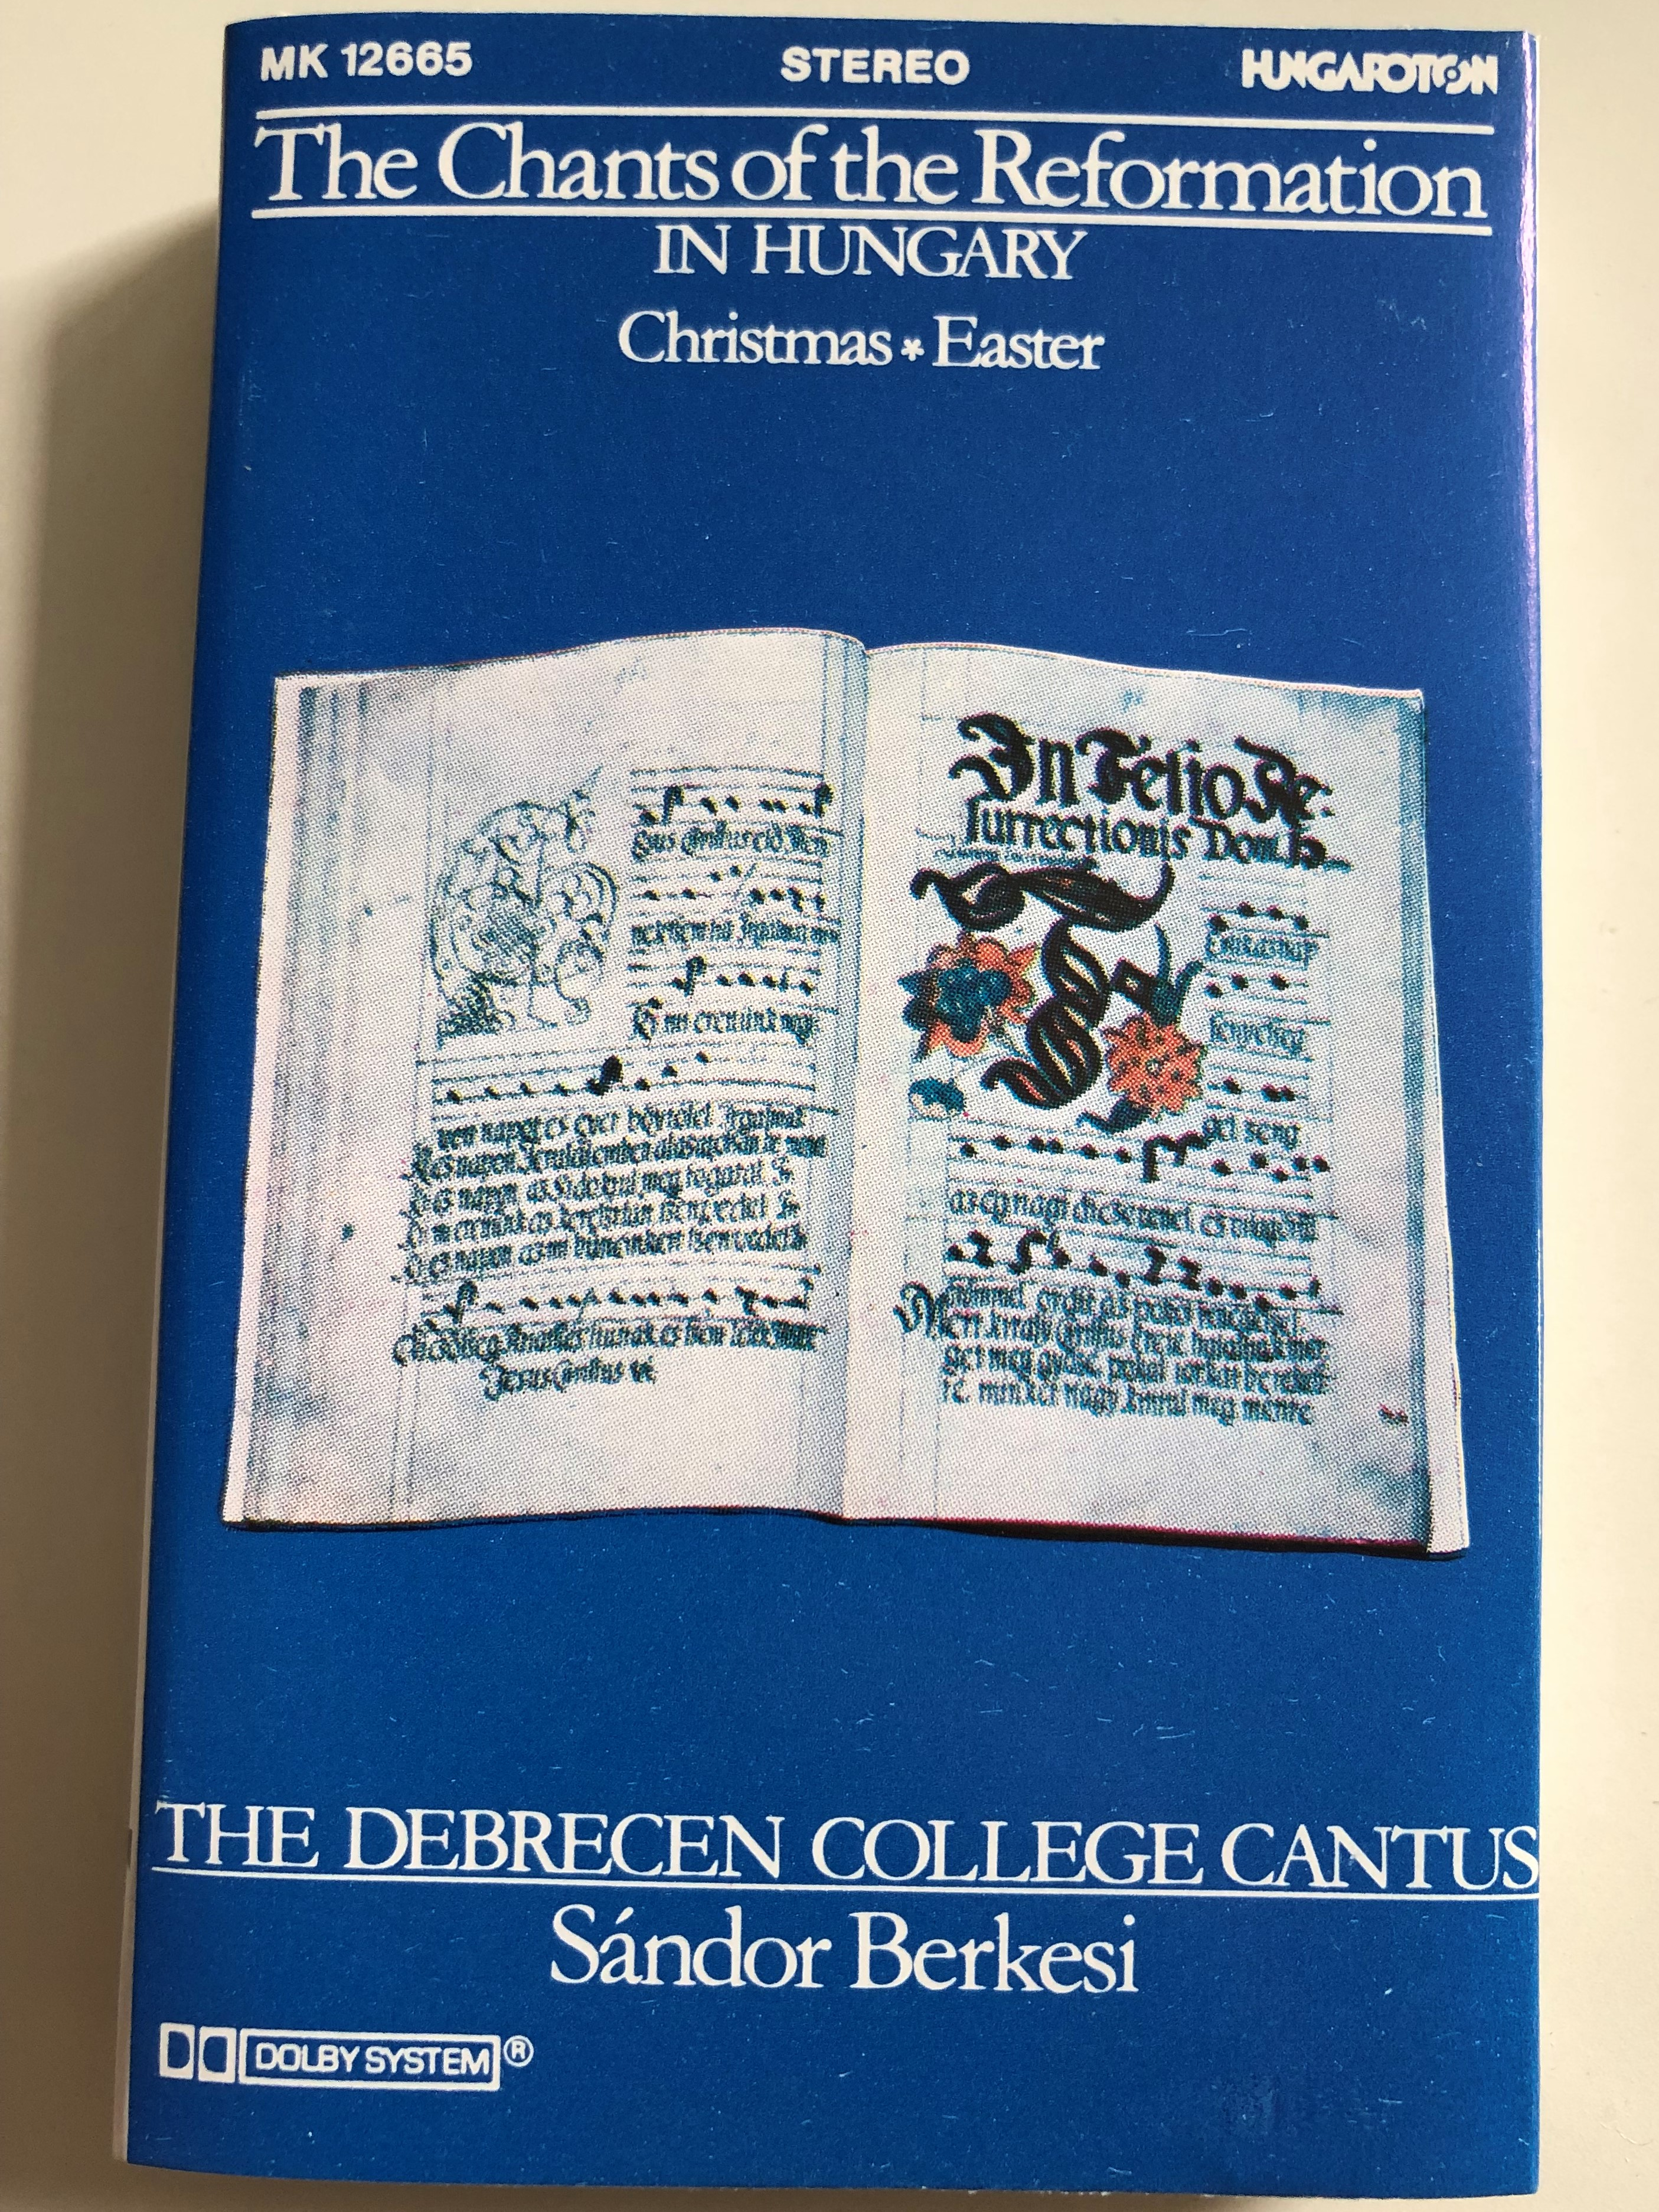 the-chants-of-the-reformation-in-hungary-christmas-easter-the-debrecen-college-cantus-conduczed-s-ndor-berkesi-hungaroton-cassette-stereo-mk-12665-1-.jpg